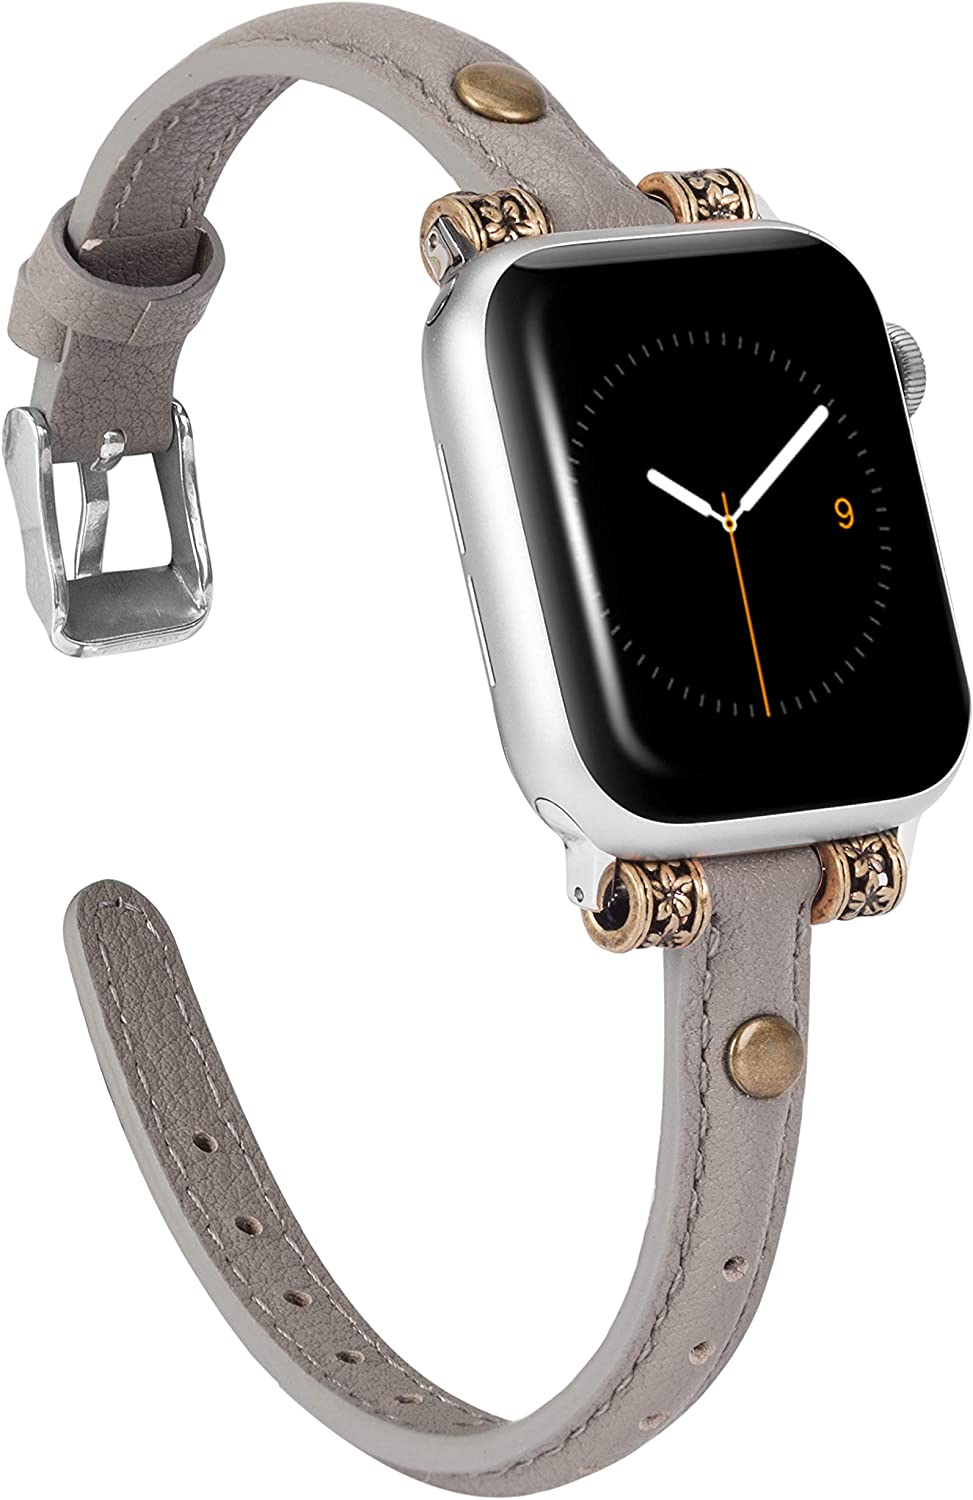 Wearlizer Leather Bands Compatible with Apple Watch Band 38mm 40mm for iWatch Womens Mens Special Slim Vintage Wristband Replacement Strap Series 5 4 3 2 1 Edition - Gray